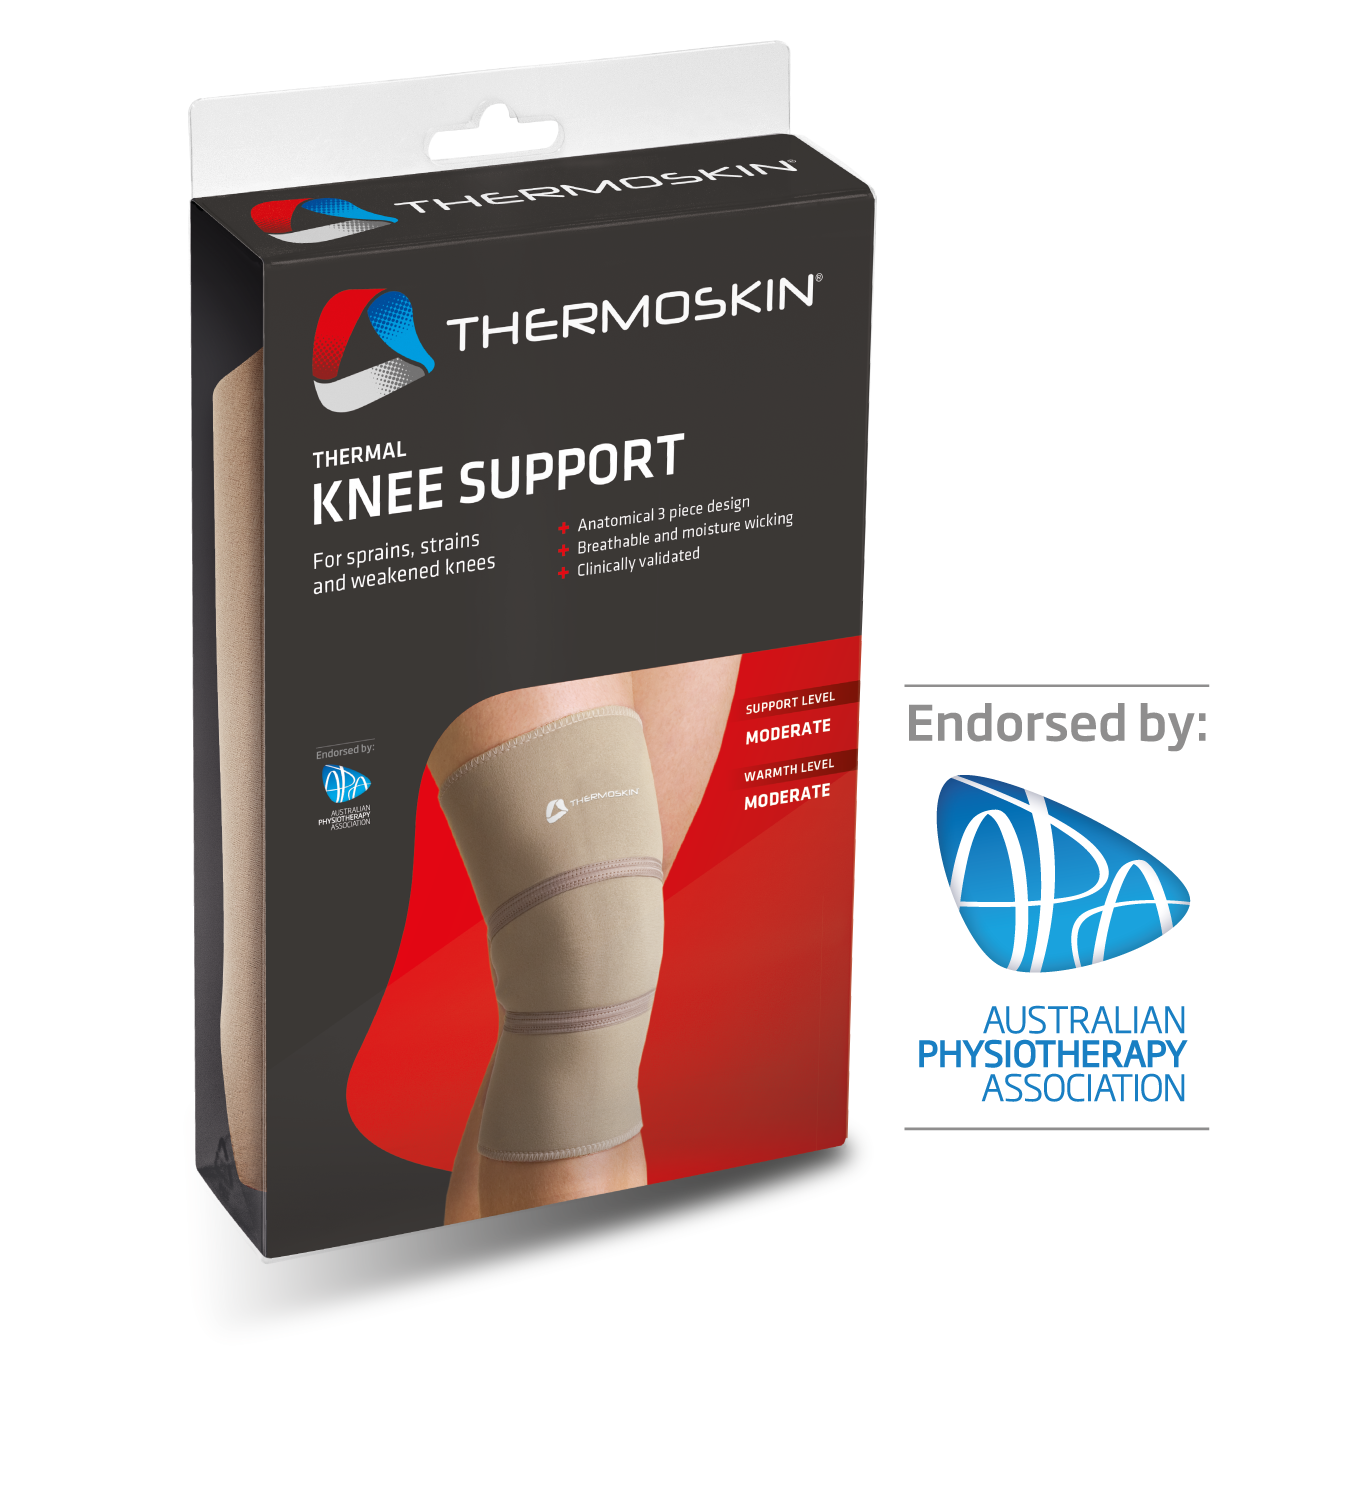 Thermoskin Thermal Knee Support - 8*208